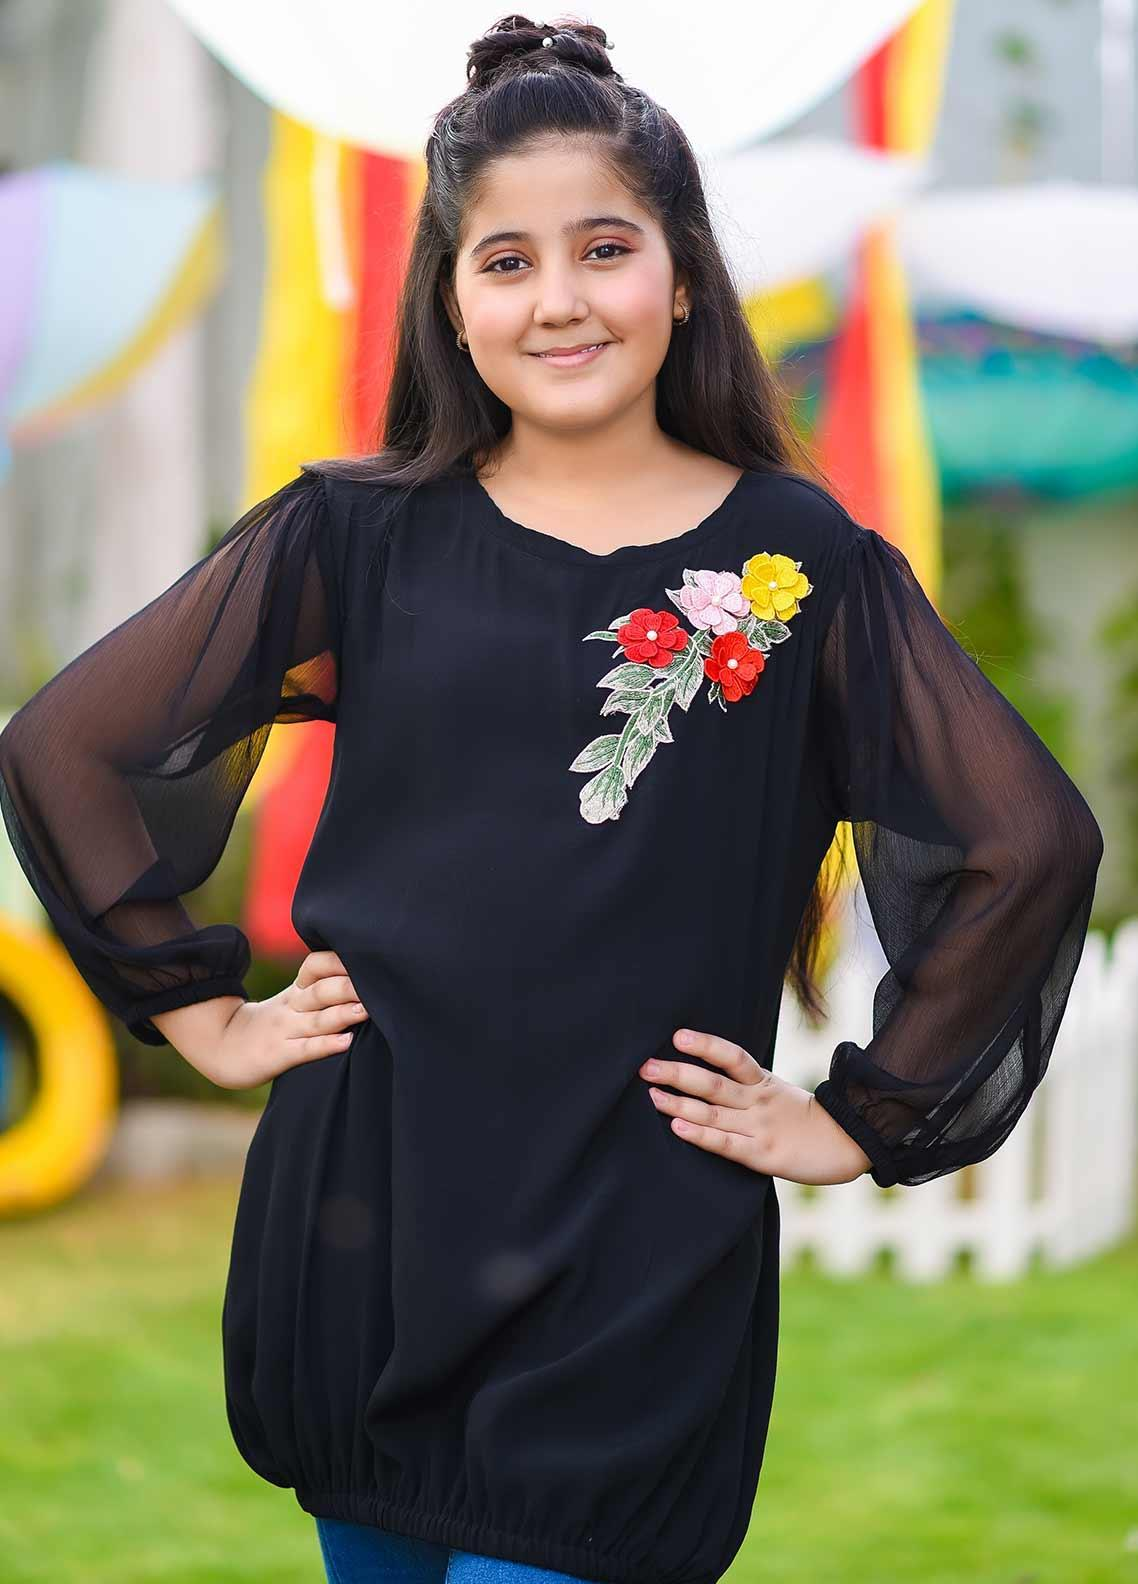 Ochre Crepe Fancy Girls Western Tops -  OWT 398 Black